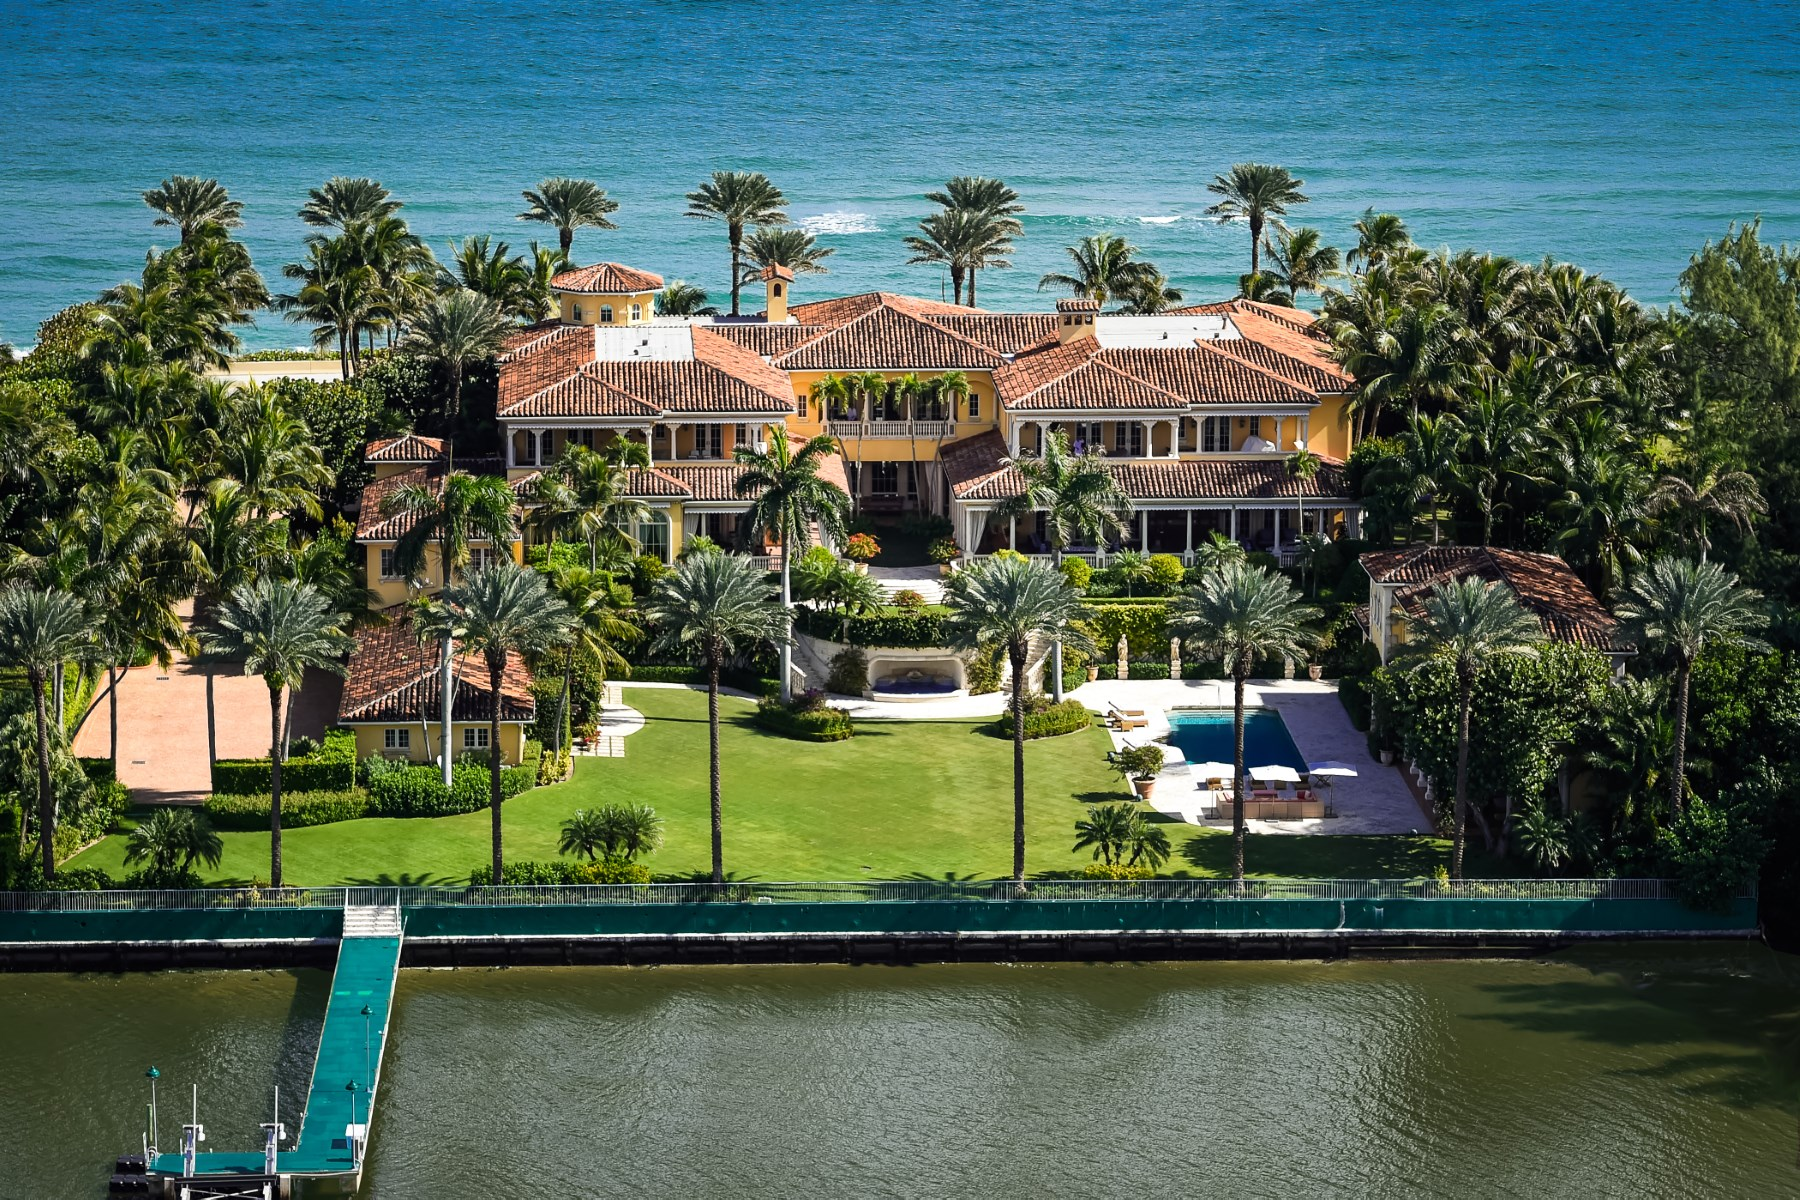 Single Family Home for Sale at Magnificent Ocean-to-Lake Mediterranean Estate Section, Palm Beach, Florida, 33480 United States